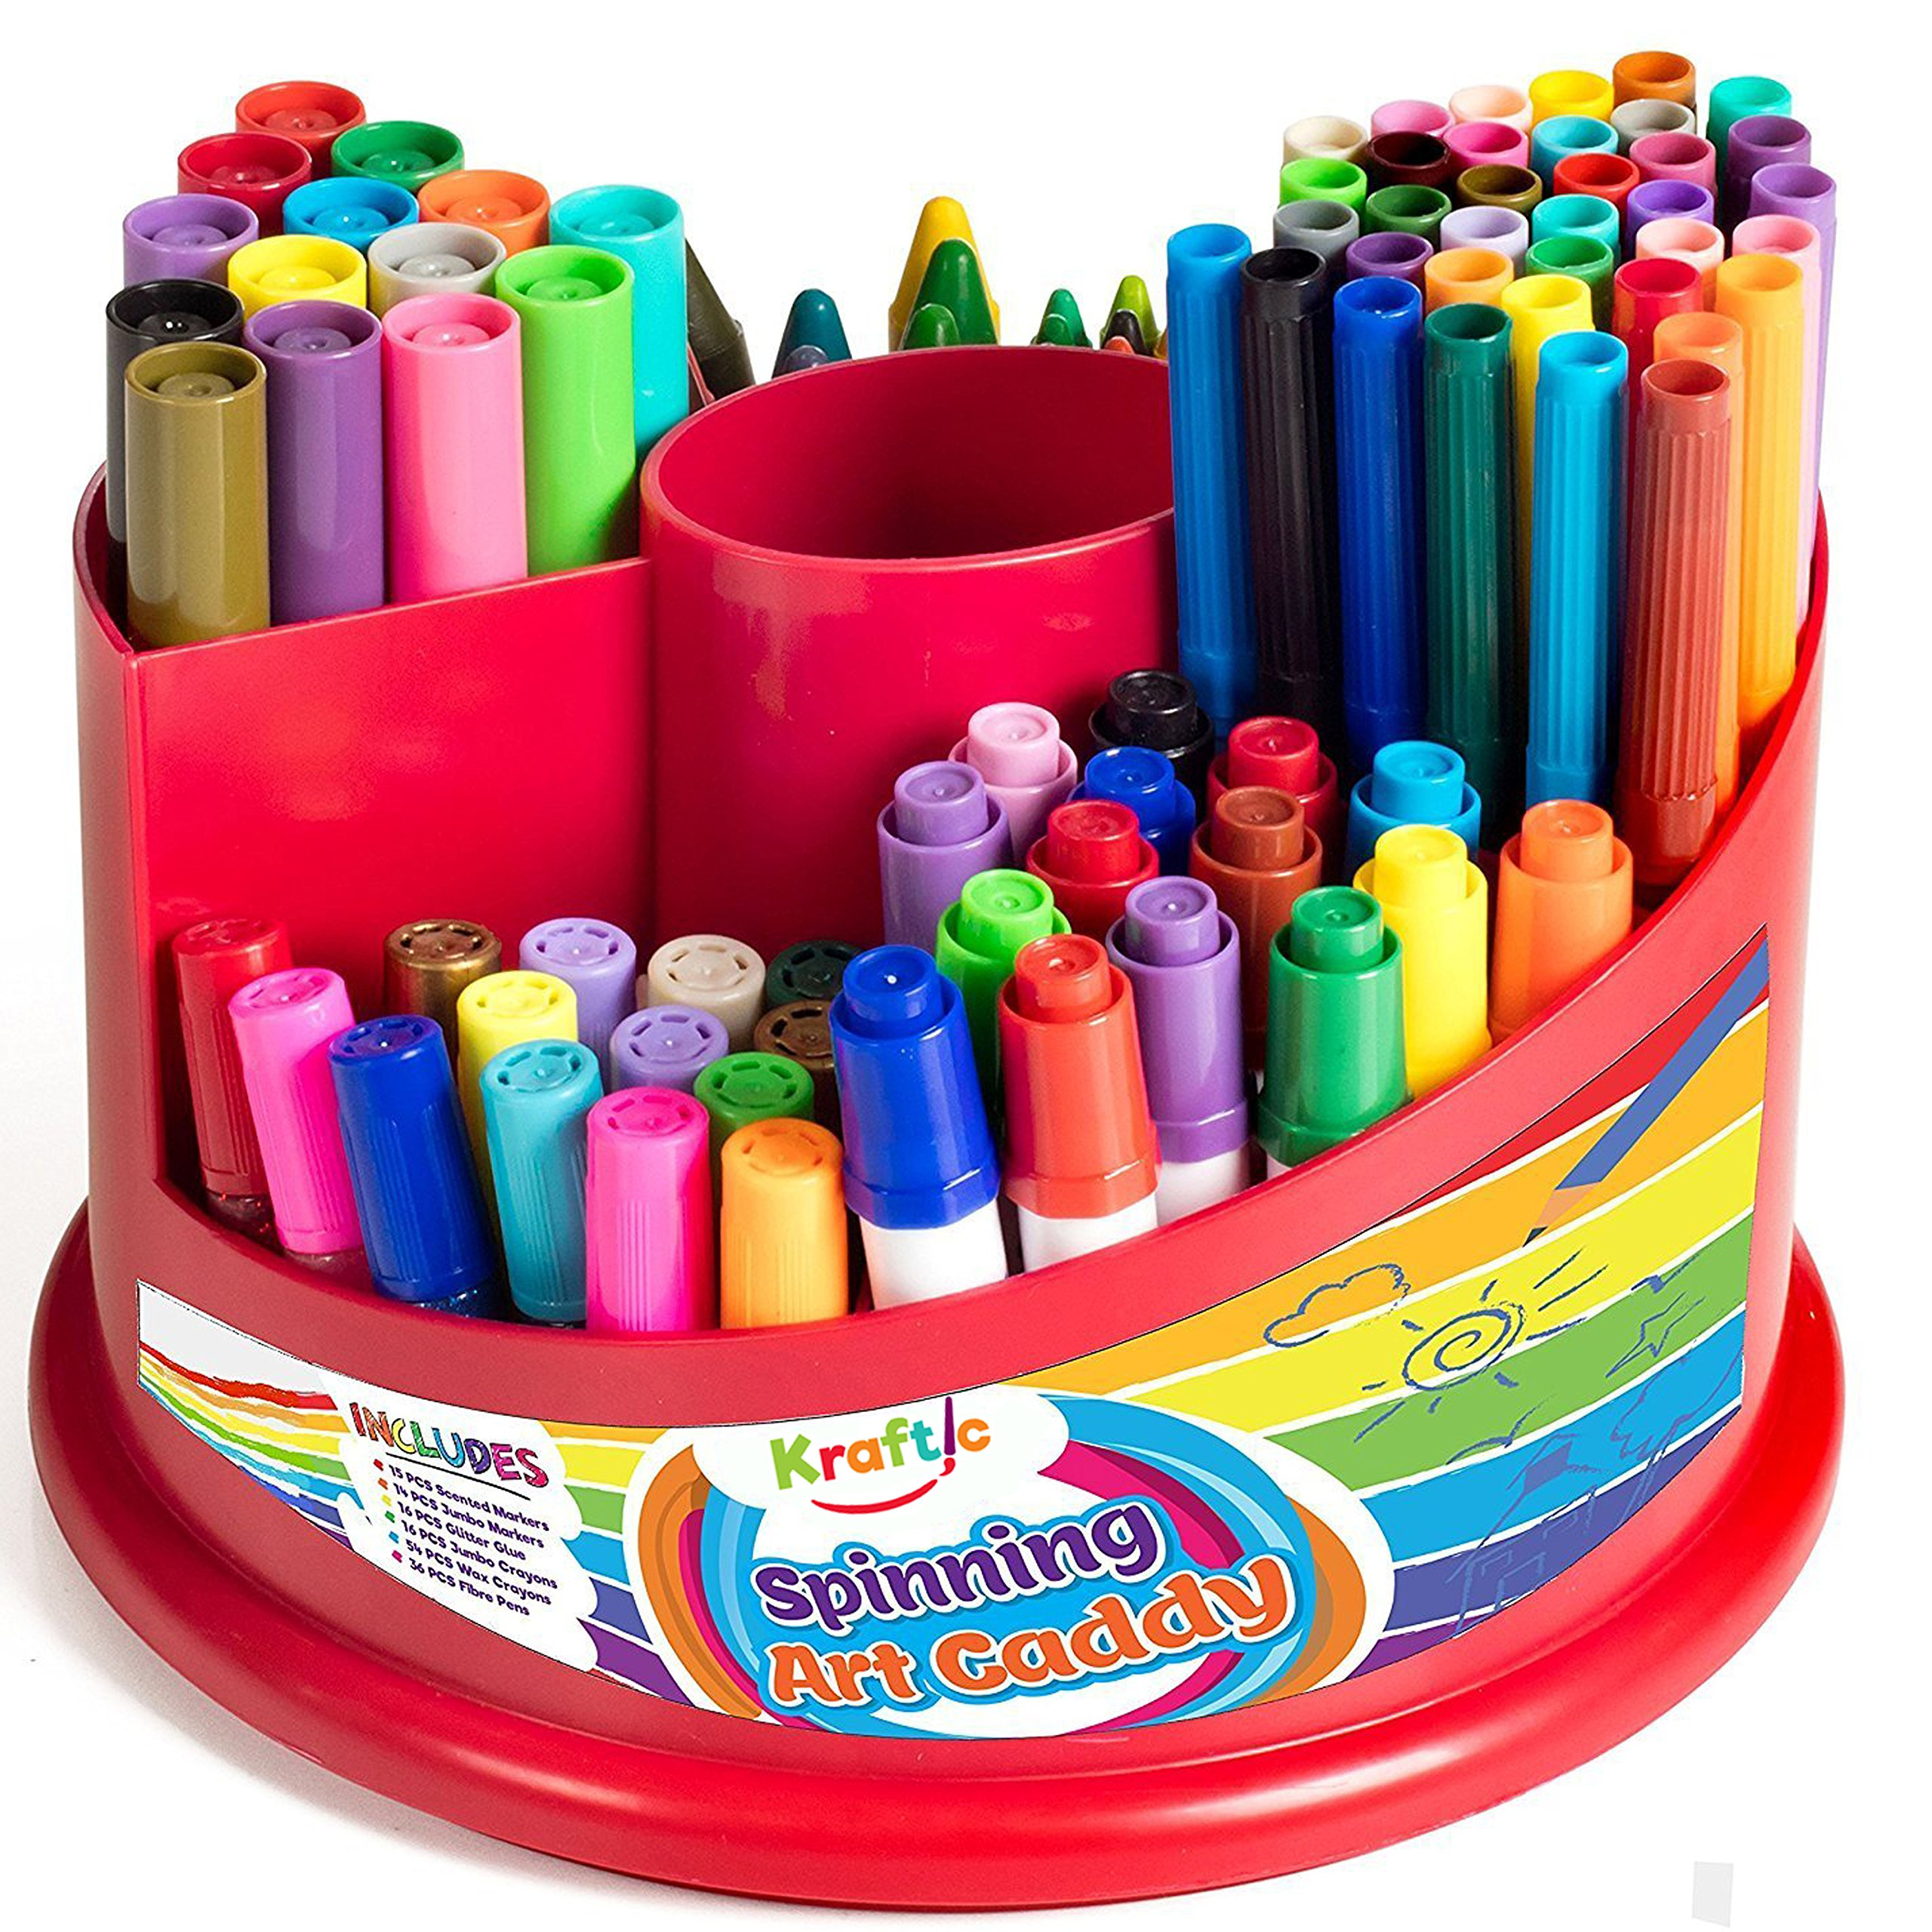 All In 1 Spinning Art Caddy with Set of Crayons, WASHABLE Markers, Scented Markers and Glitter Glue, 151 Piece Set by Kraftic (Image #2)